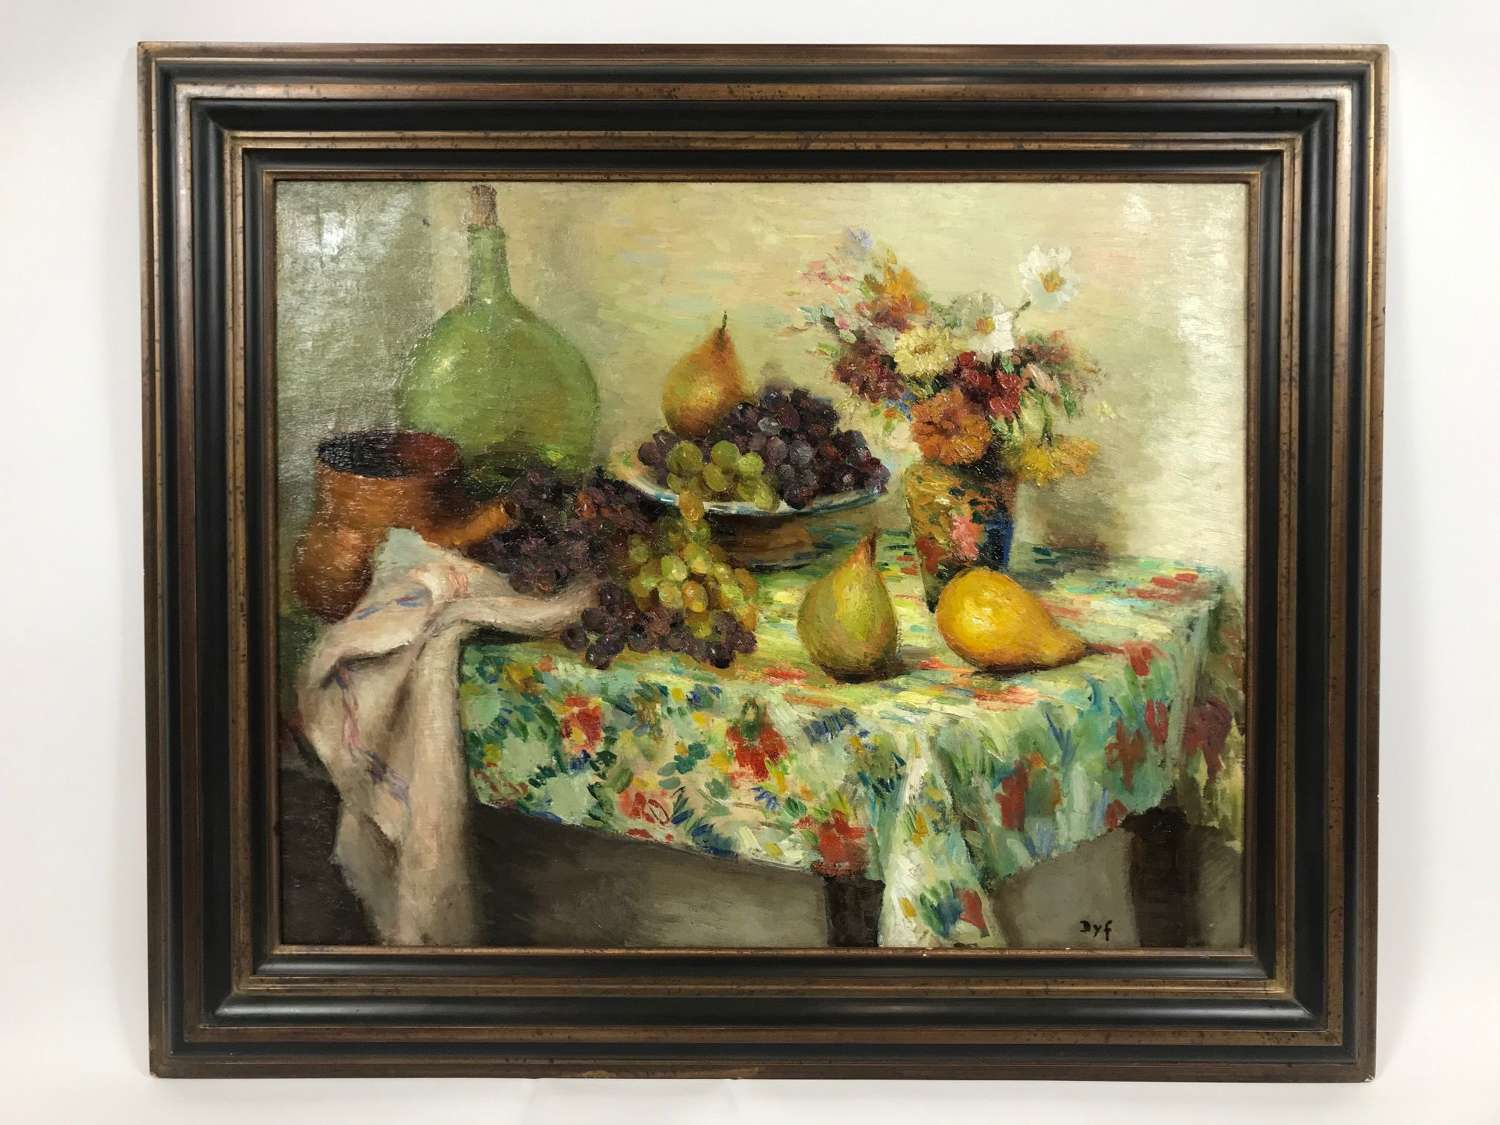 Marcel Dyf French (1899-1985) Oilpainting Nature morte aux tres poires